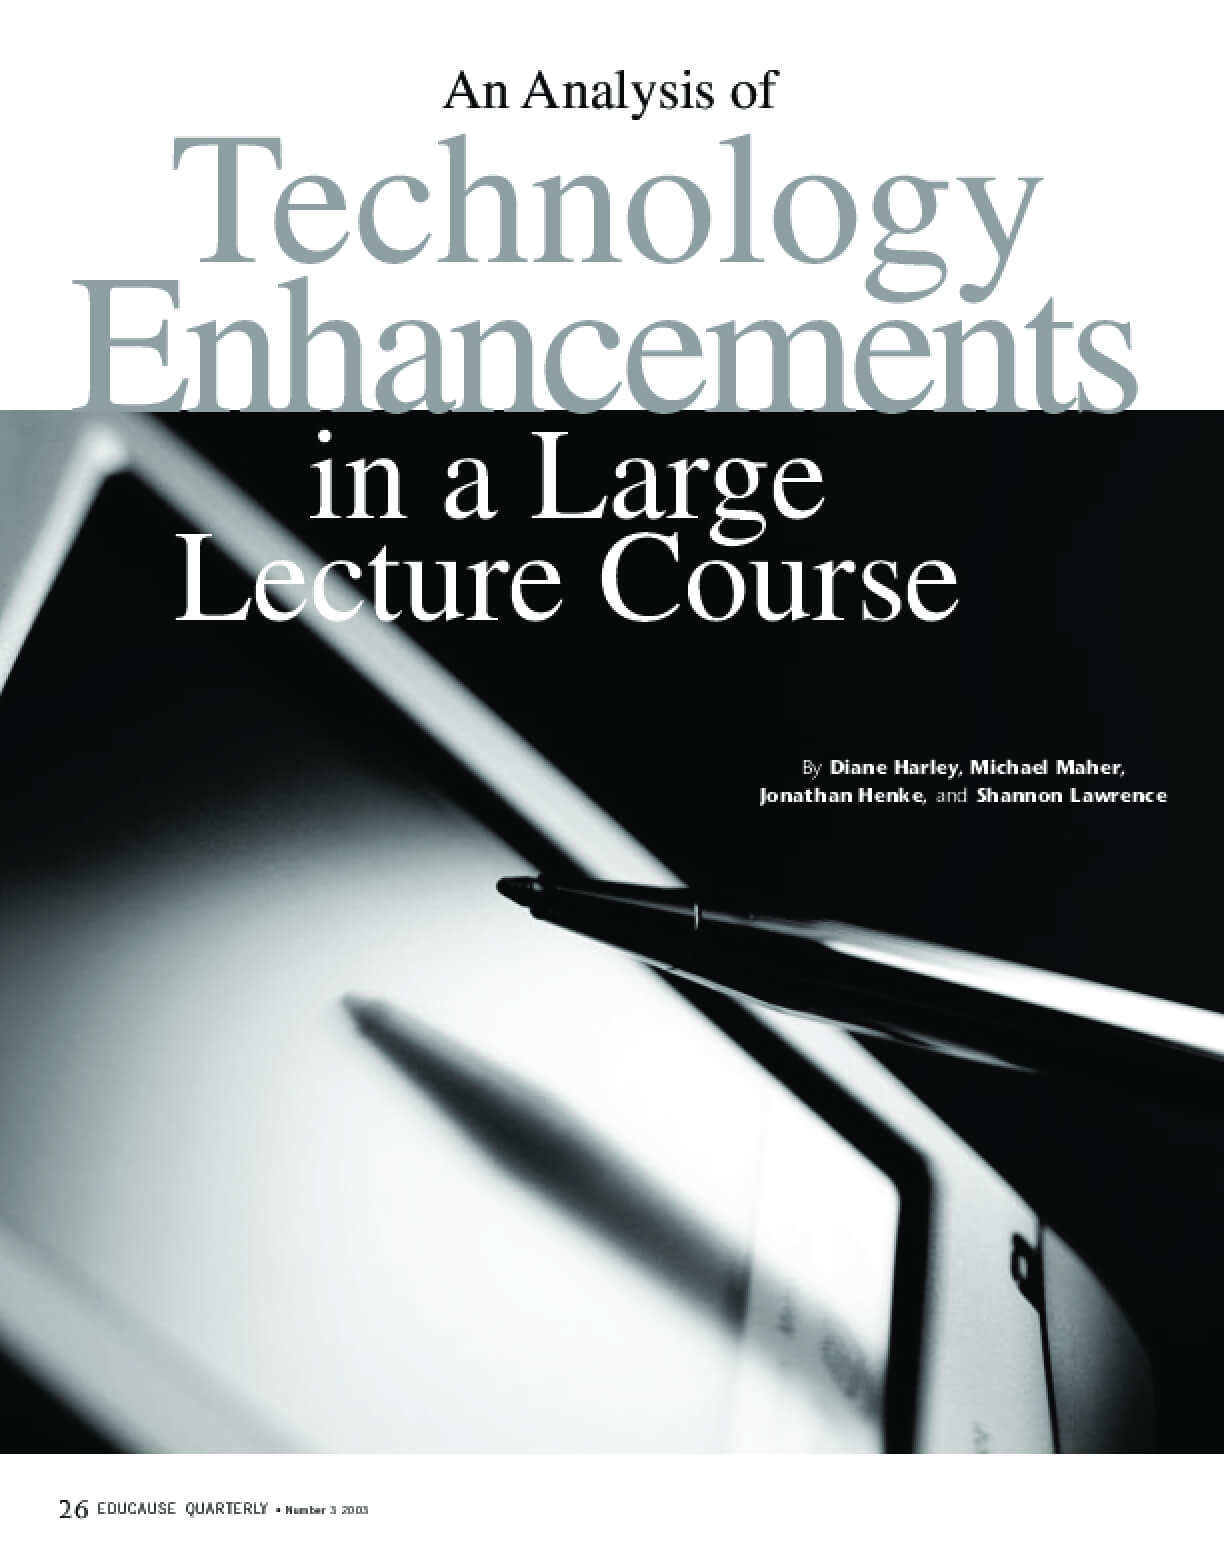 An Analysis of Technology Enhancements in a Large Lecture Course